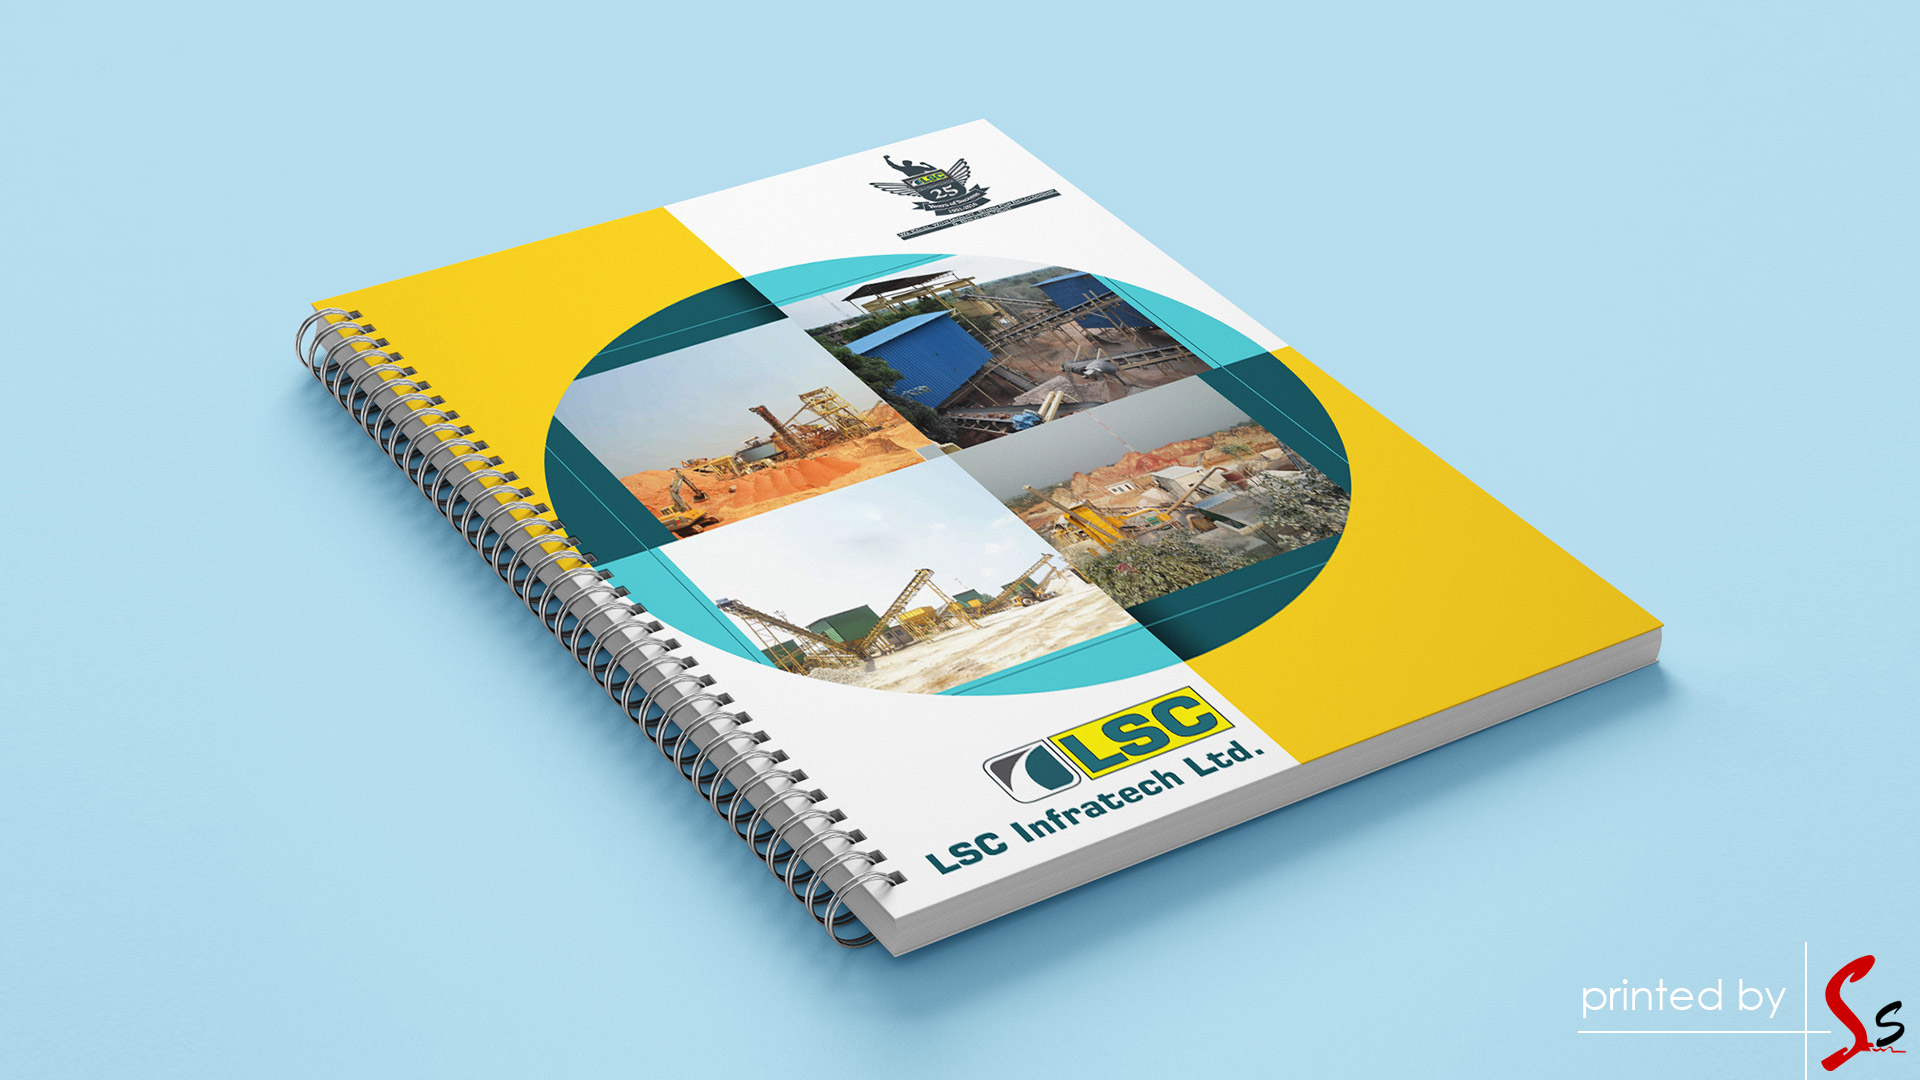 LSC-Infratech Notebook Printing